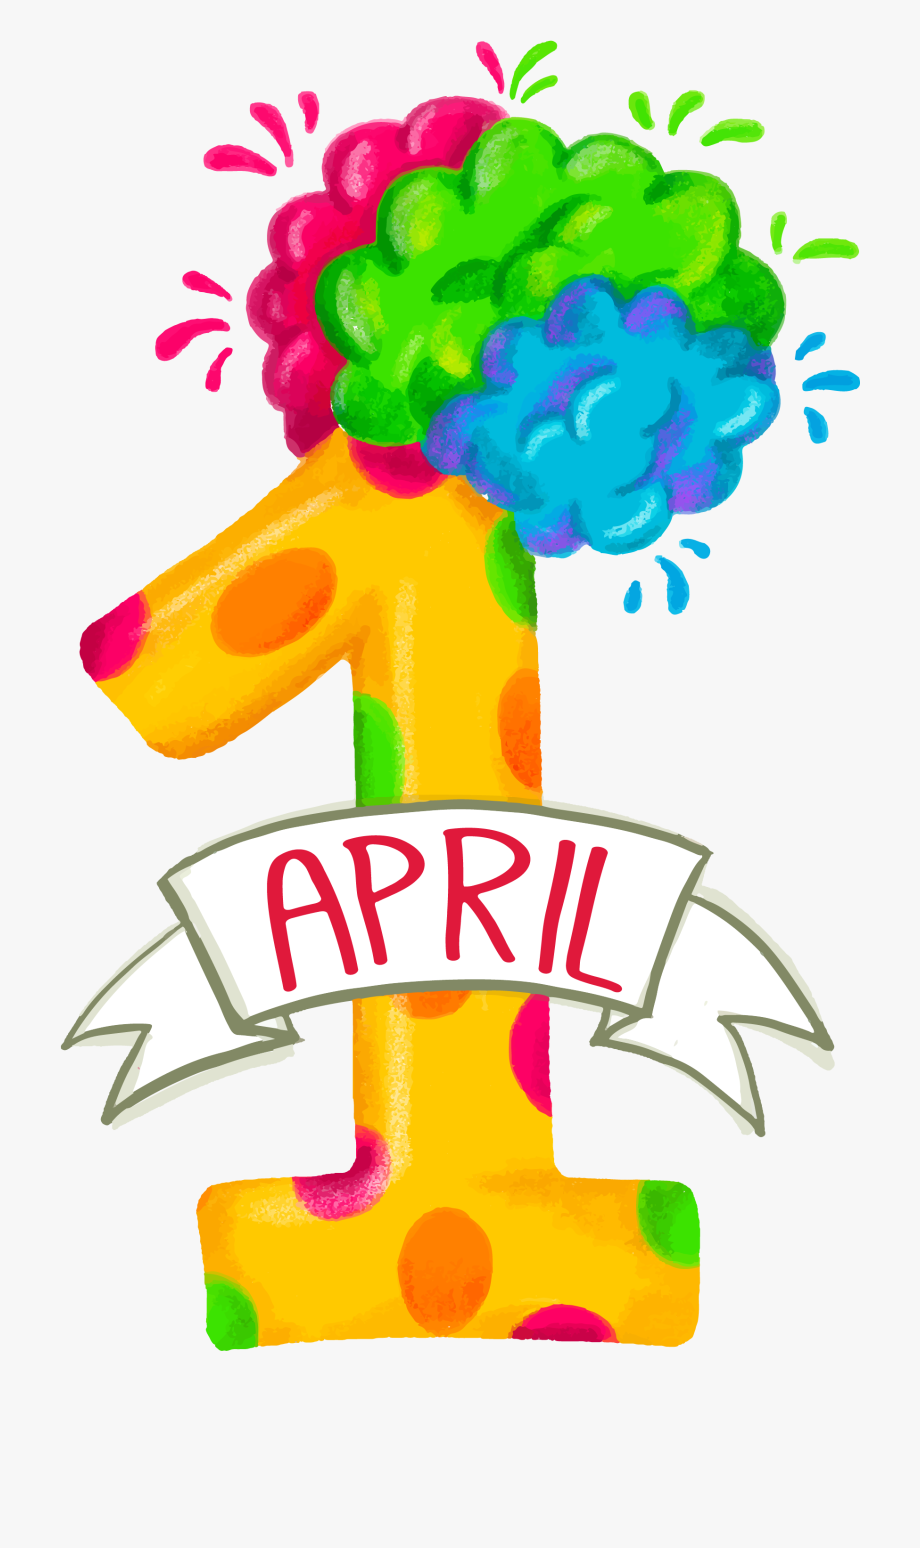 April Fools Day Png Stock Images.